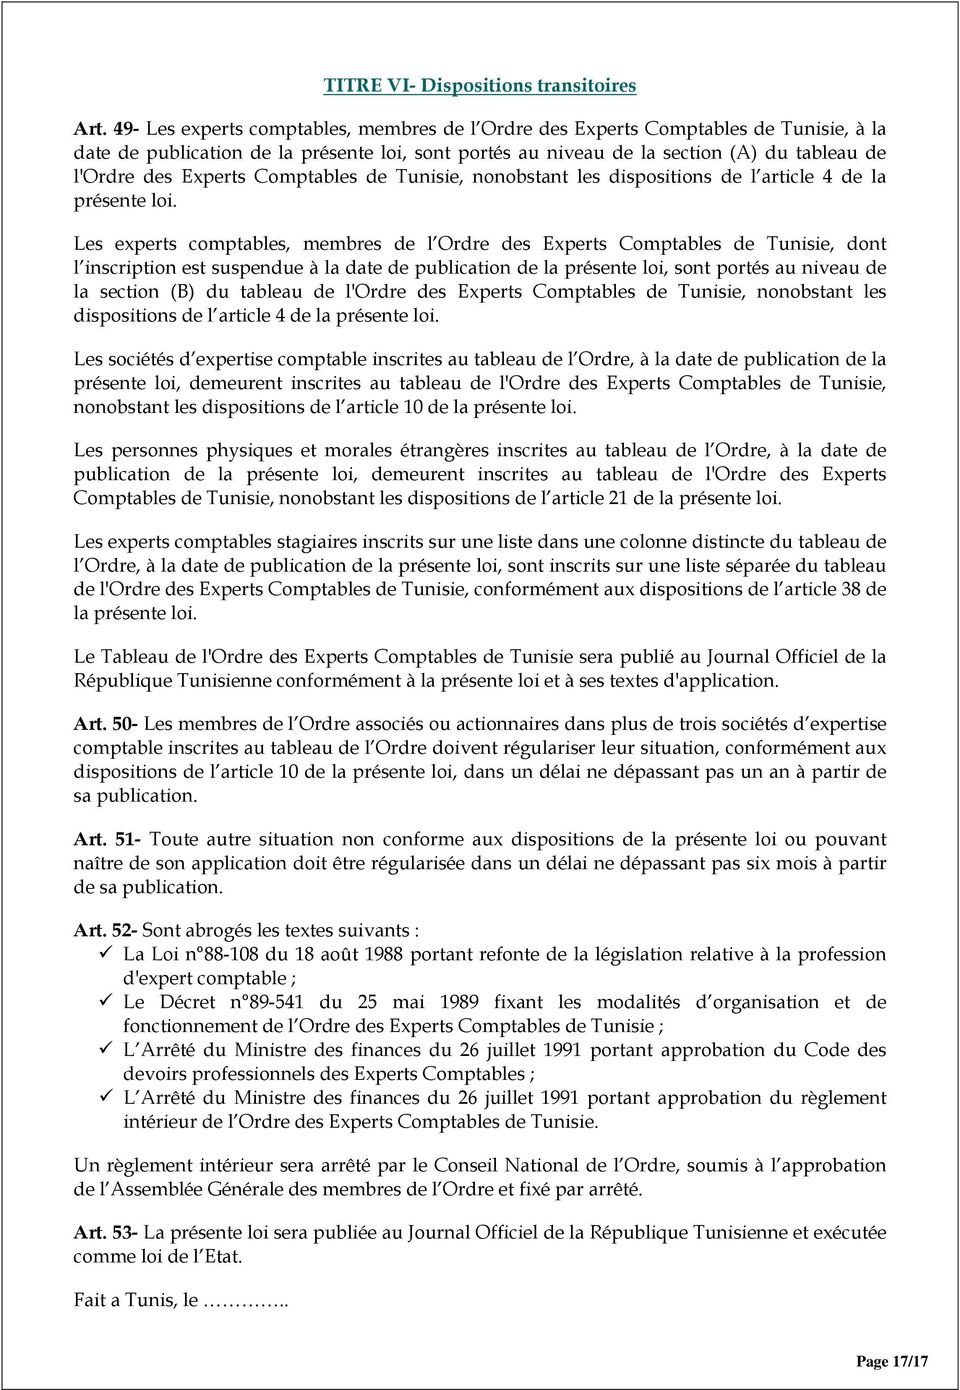 Experts Comptables de Tunisie, nonobstant les dispositions de l article 4 de la présente loi.